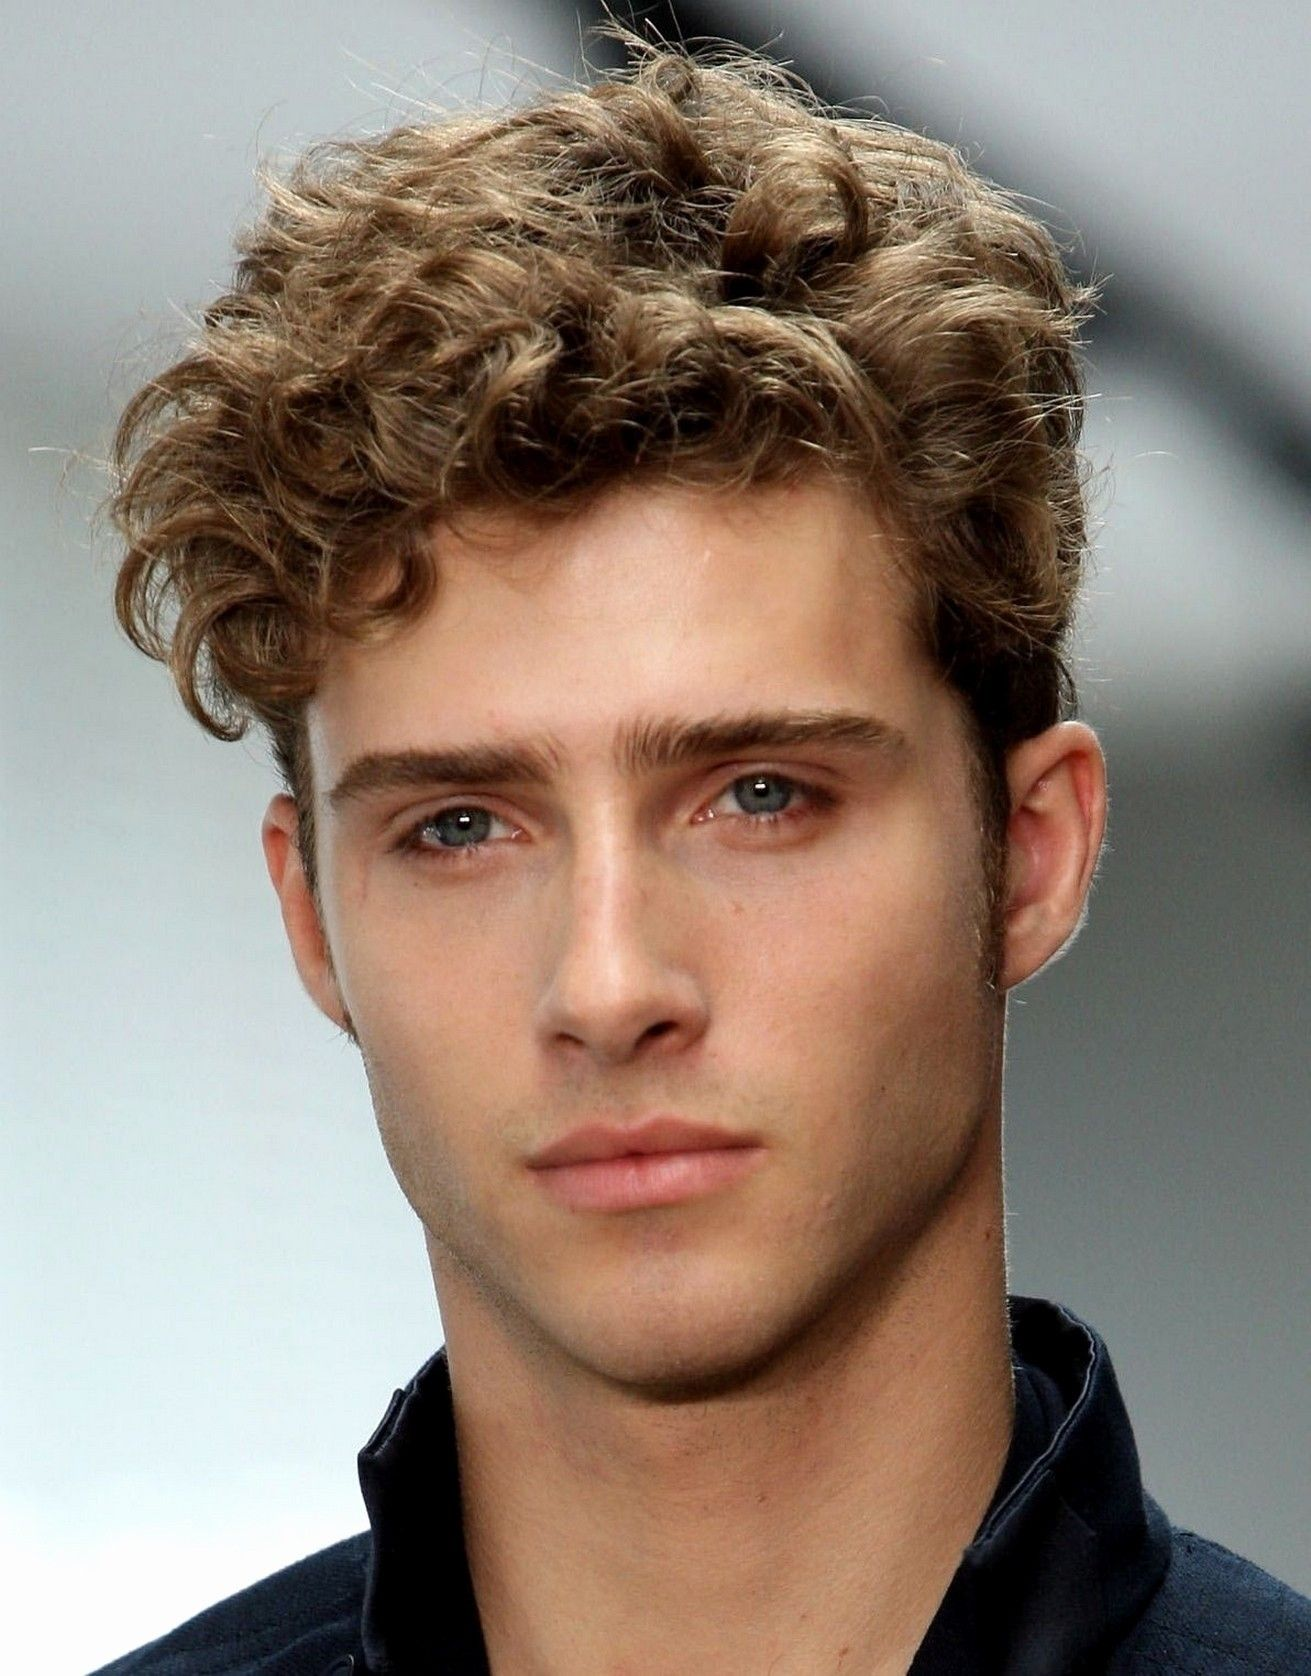 A Perfect Hairstyles For Men With Curly Hair And Round Faces Best Hair Style Men Men S Curly Hairstyles Curly Hair Men Thick Curly Hair